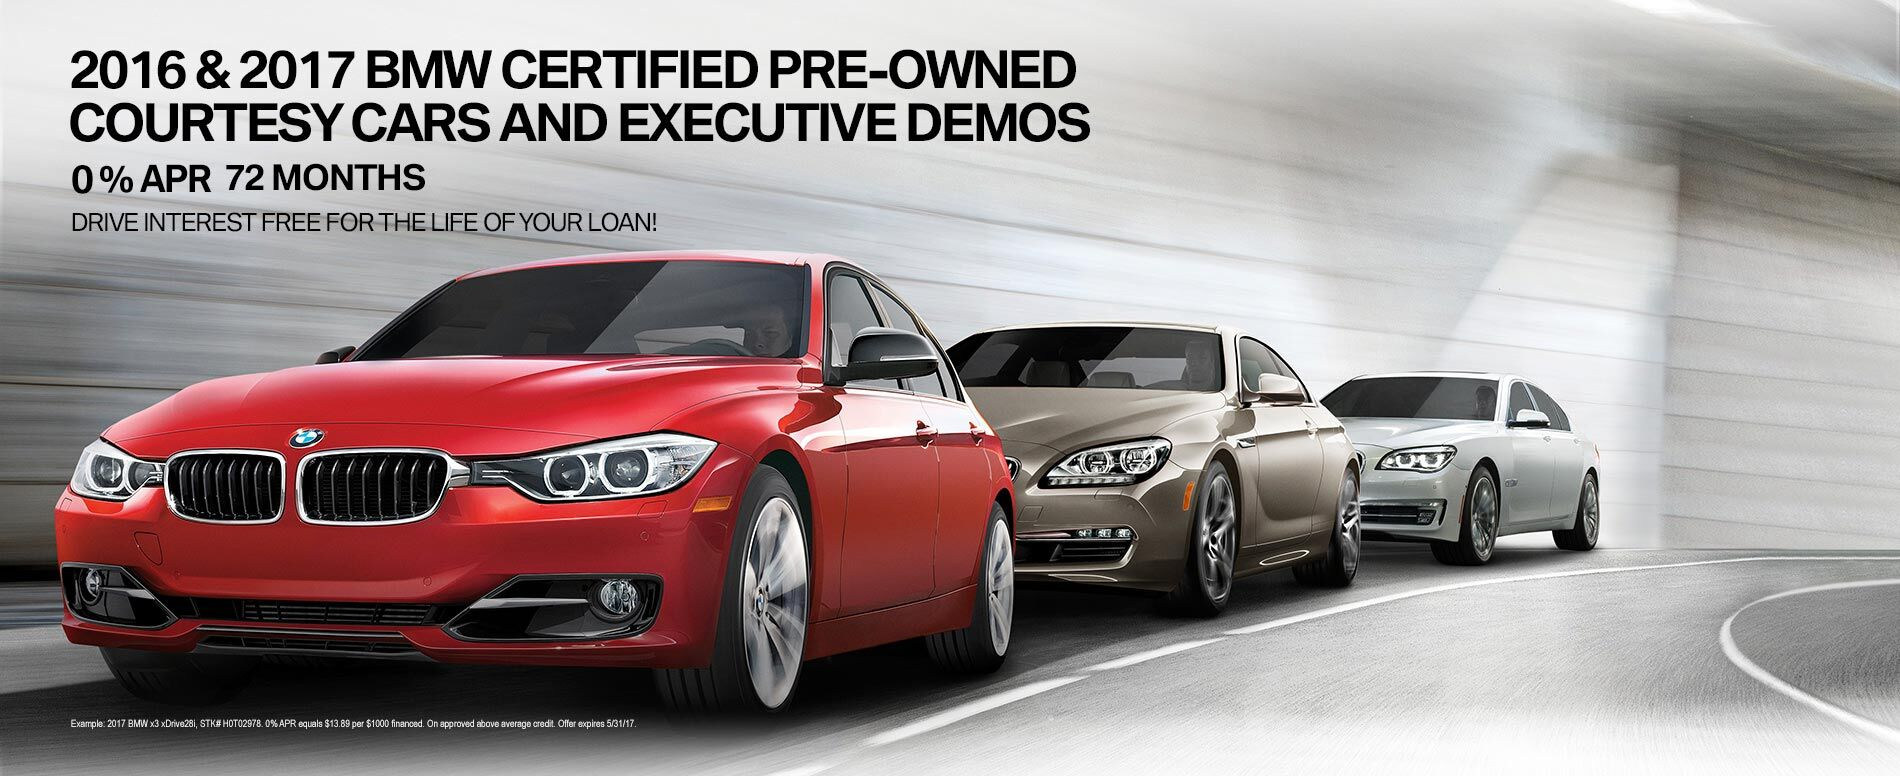 2016/2017 BMW Certified Pre-Owned Courtesy Cars and Executive Demos